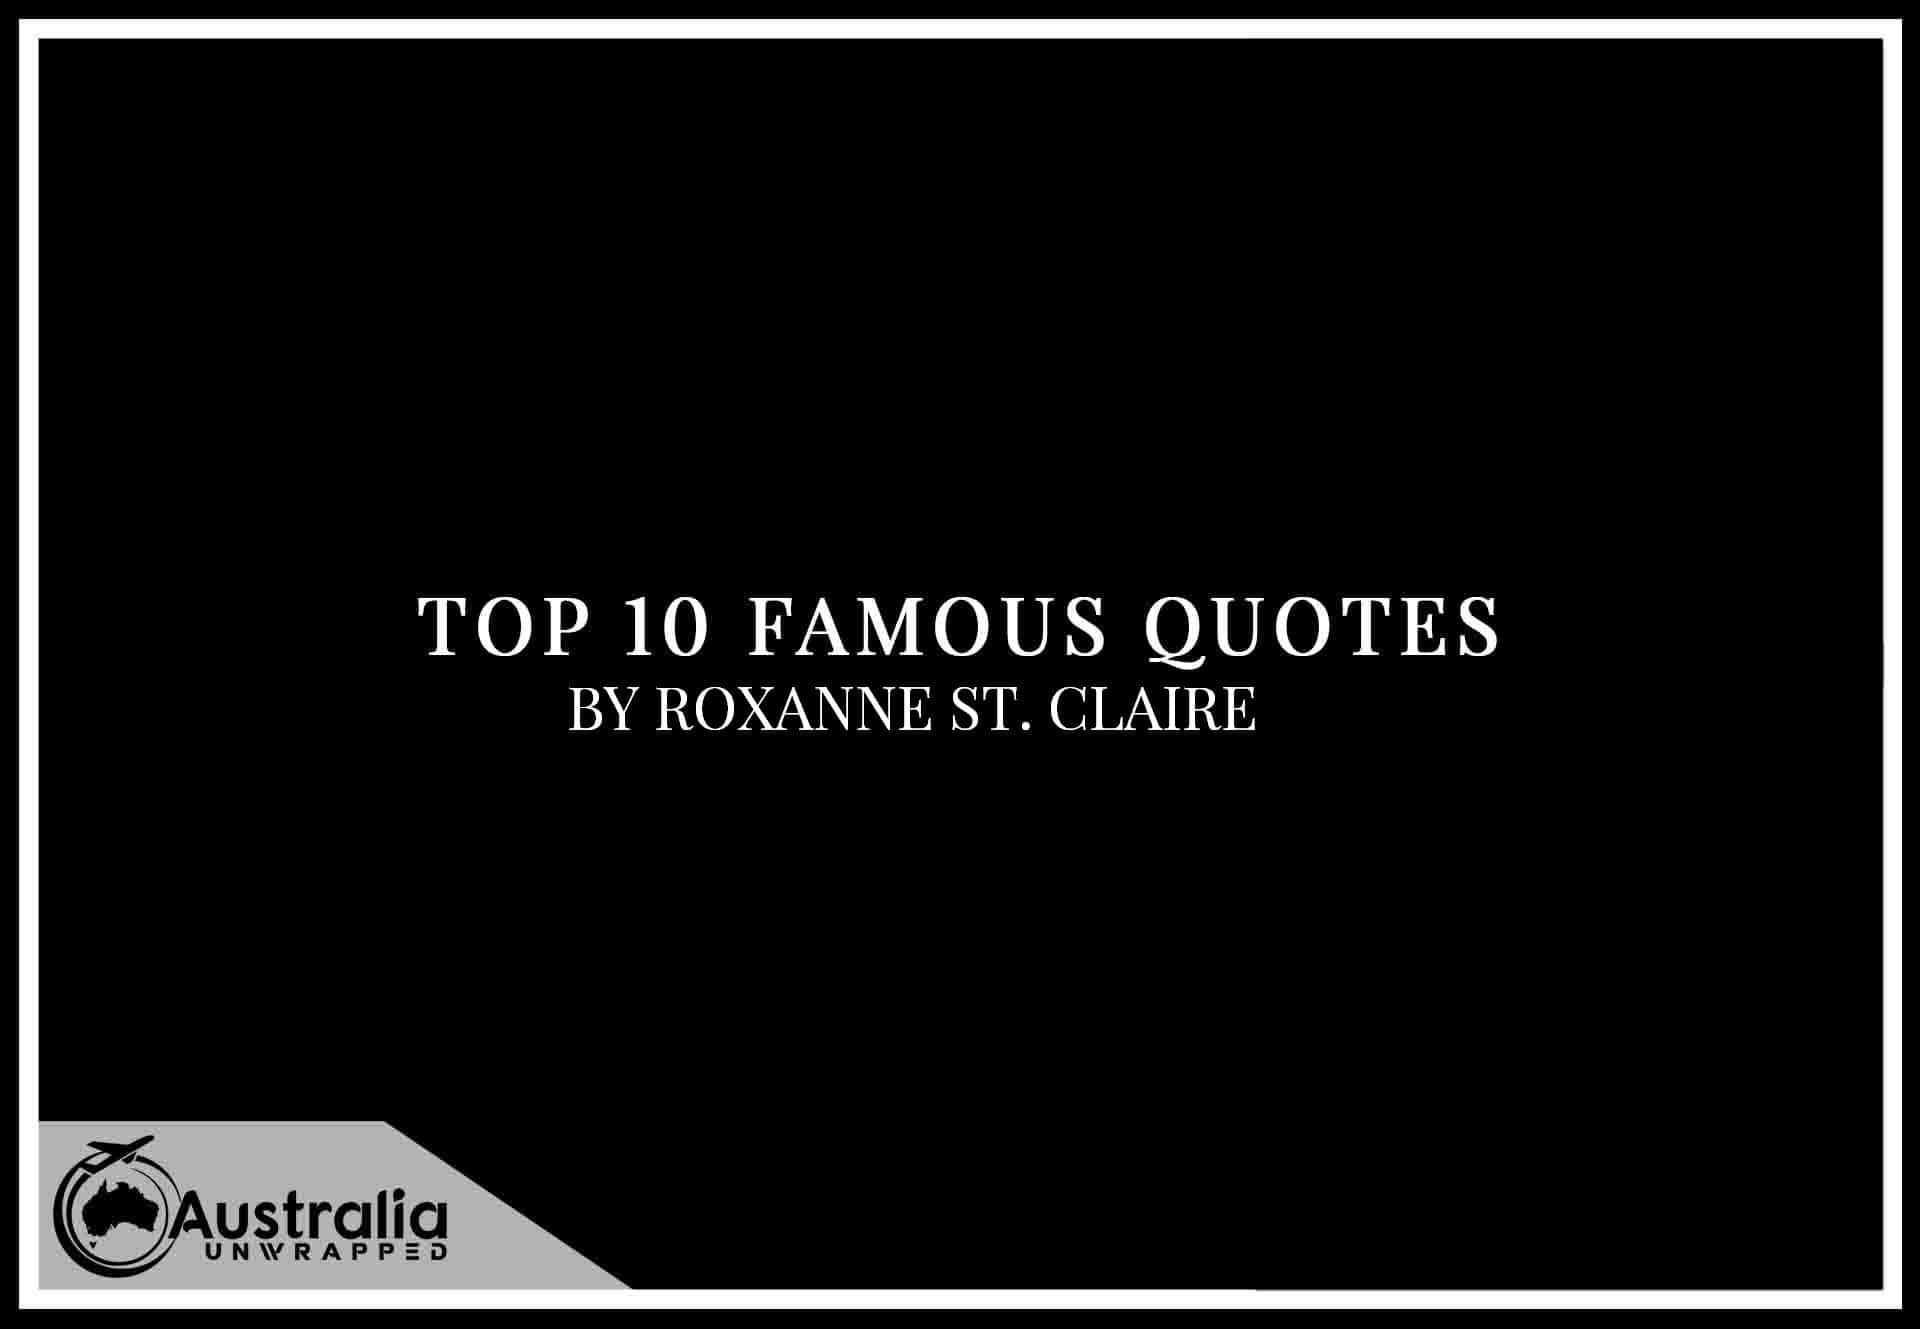 Top 10 Famous Quotes by Author Roxanne St. Claire